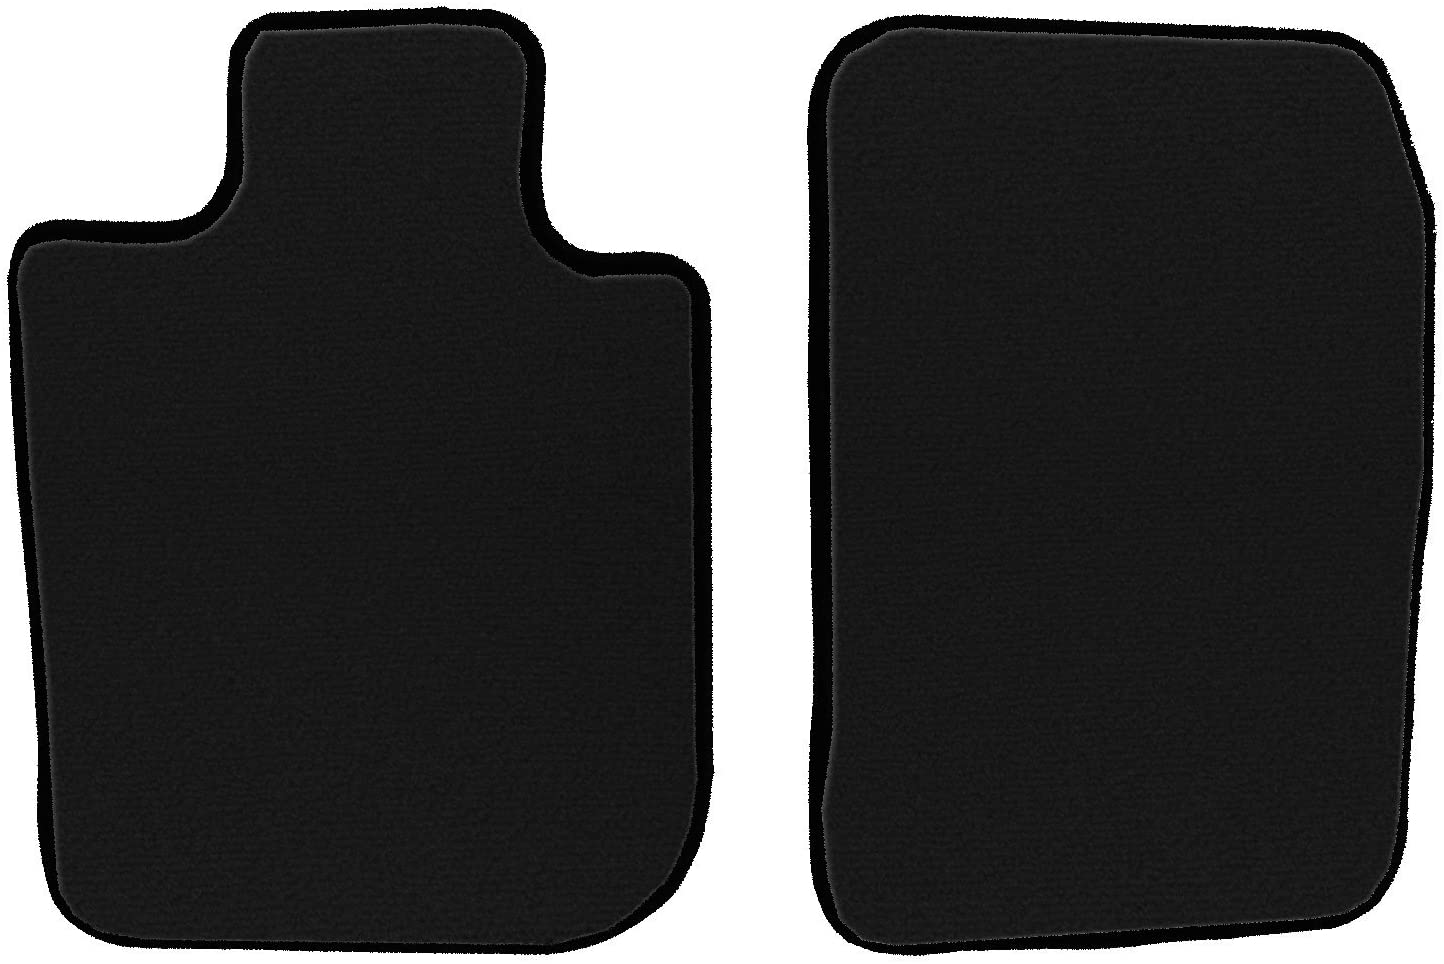 GGBAILEY D50626-F1A-BK-LP Custom Fit Car Mats for 2014 2015 2017 Subaru Forester Black Loop Driver /& Passenger Floor 2016